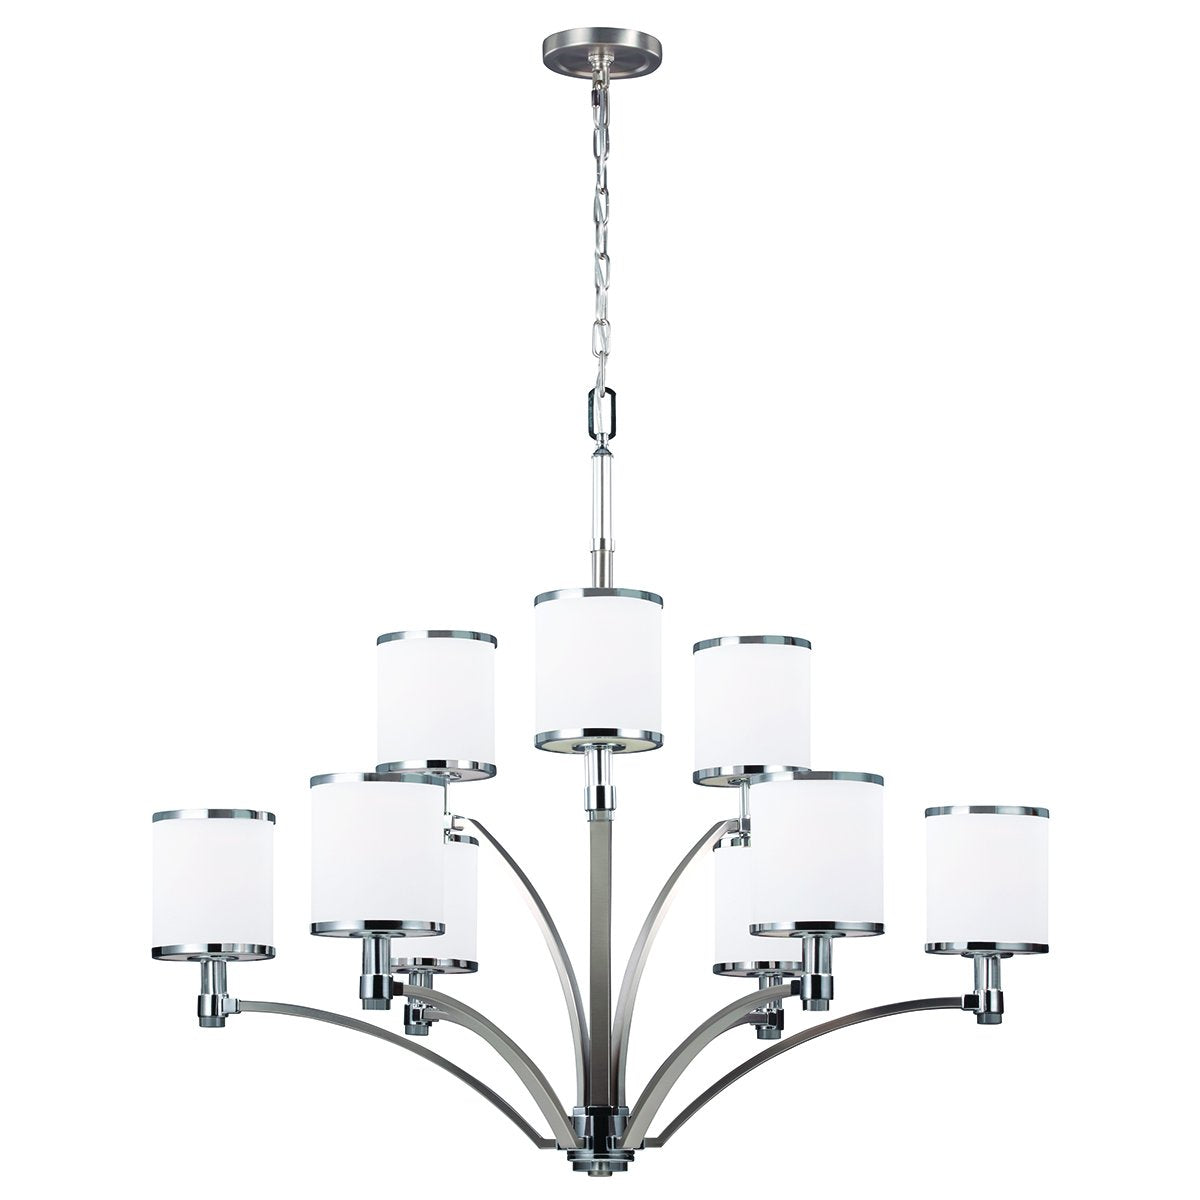 Satin Nickel/Chrome Chandelier